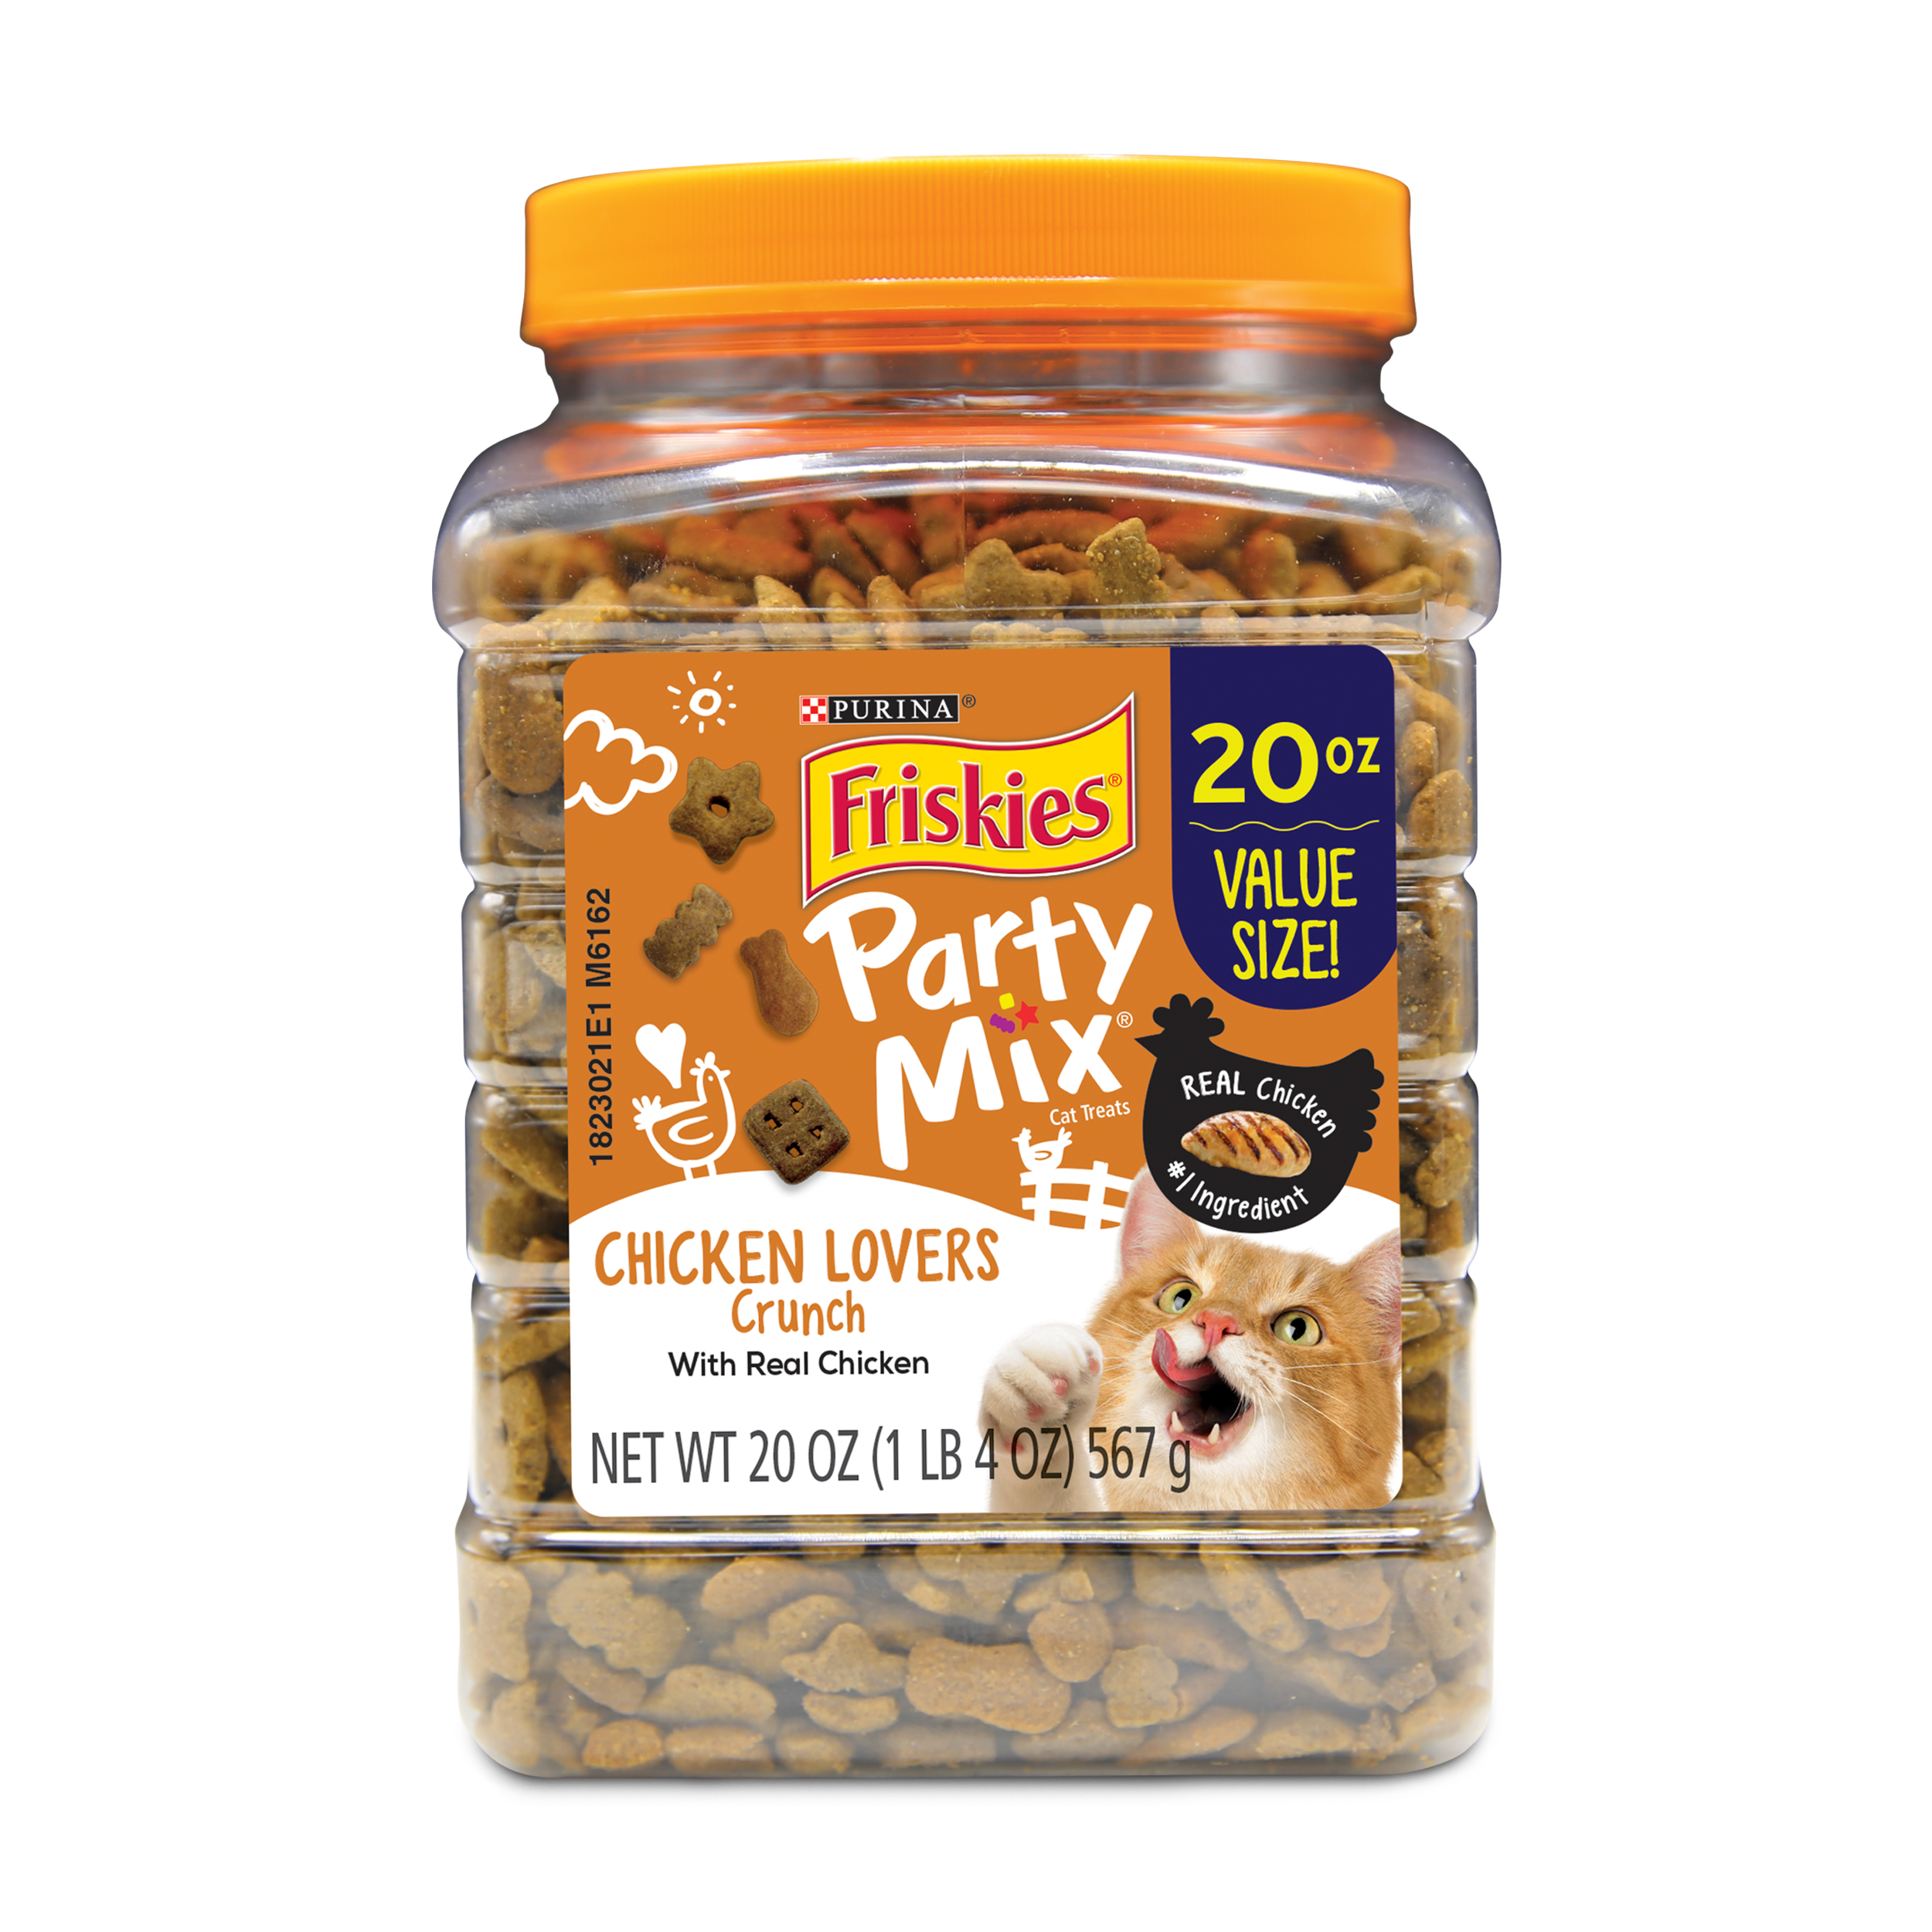 Purina Friskies Party Mix Crunch Chicken Lovers Cat Treats 20 oz. Canister by Nestle Purina Petcare Company